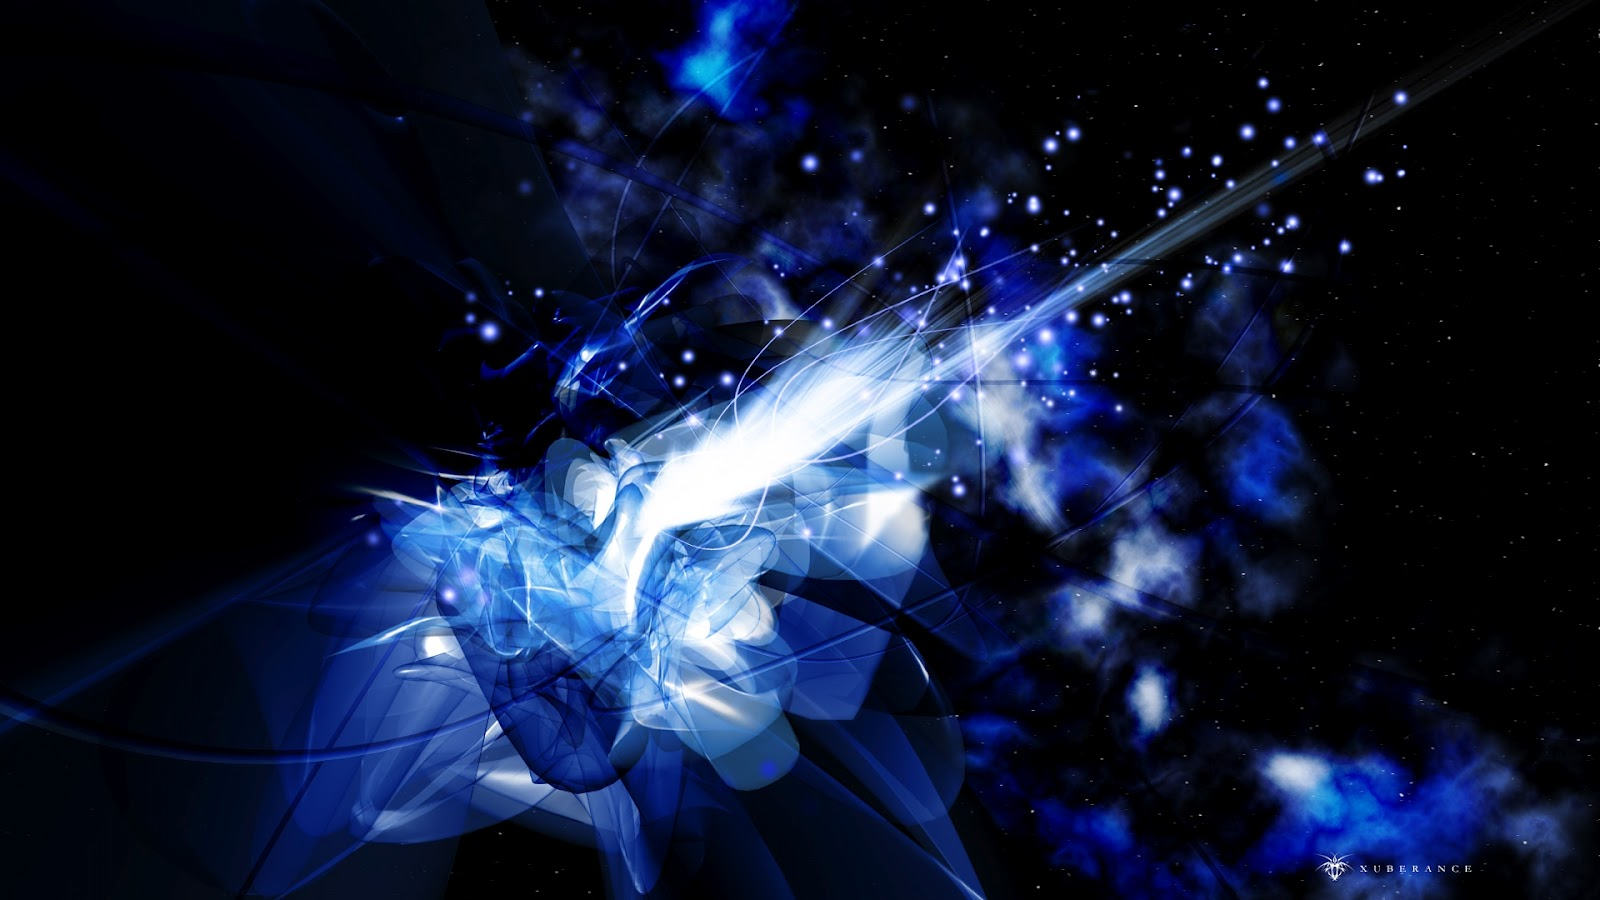 abstract dubstep wallpaper 1080p - photo #39